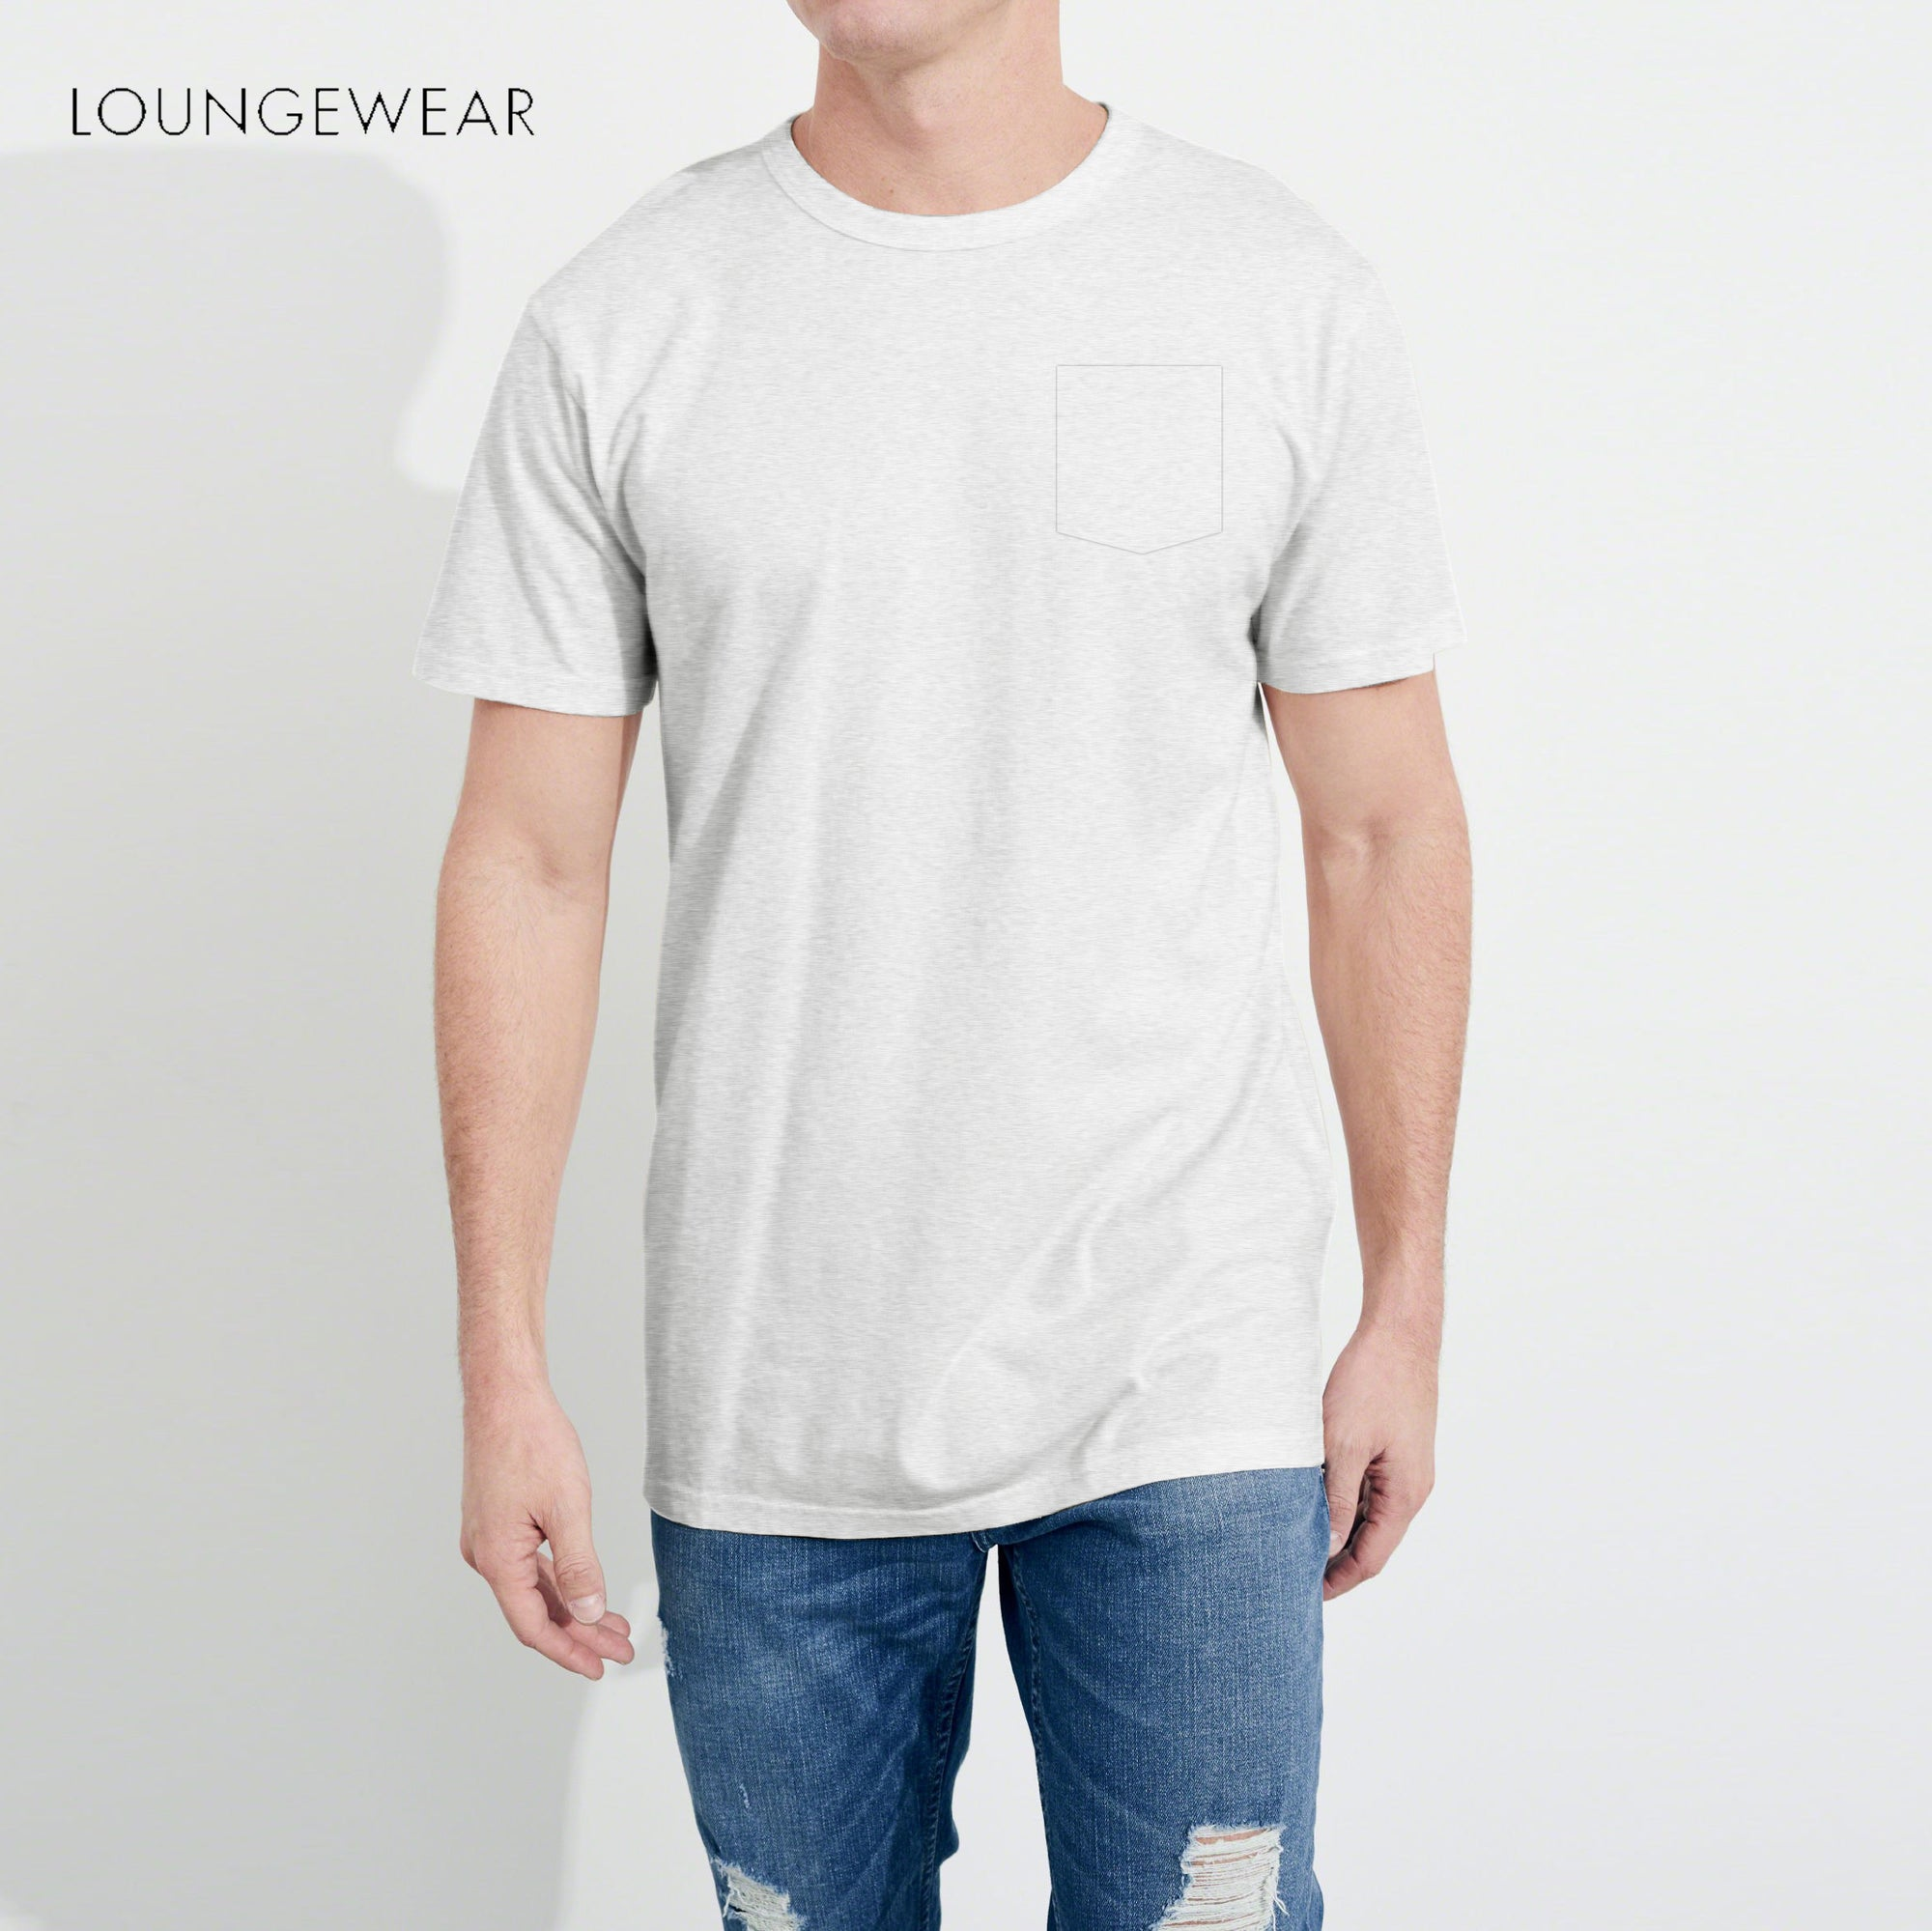 7a4f9503e1bd Lounge wear Crew Neck Tee Shirt For Men-Light Gray-NA1191 - BrandsEgo